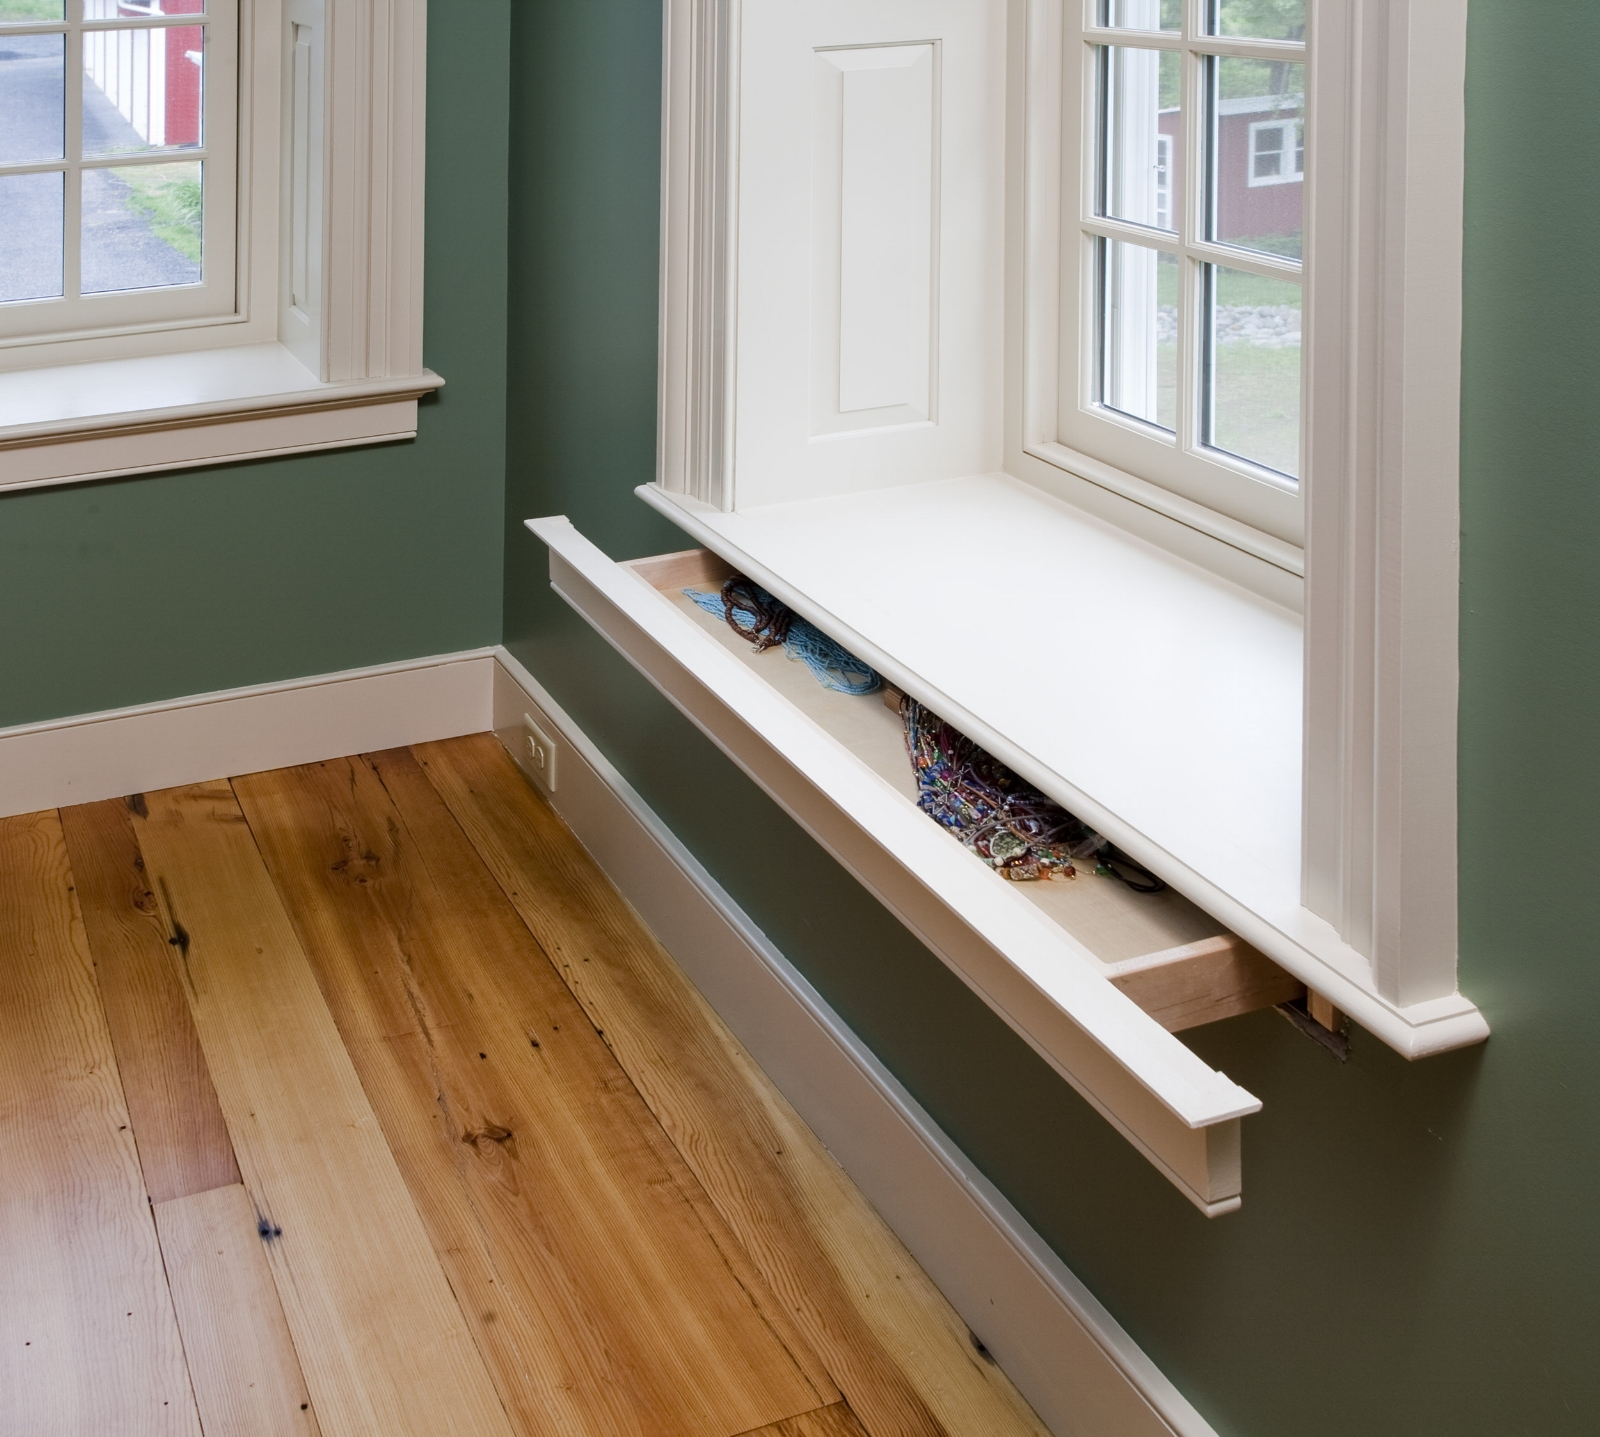 Picture courtesy of GL Callow Building and Remodeling ( www.glcallow.com)